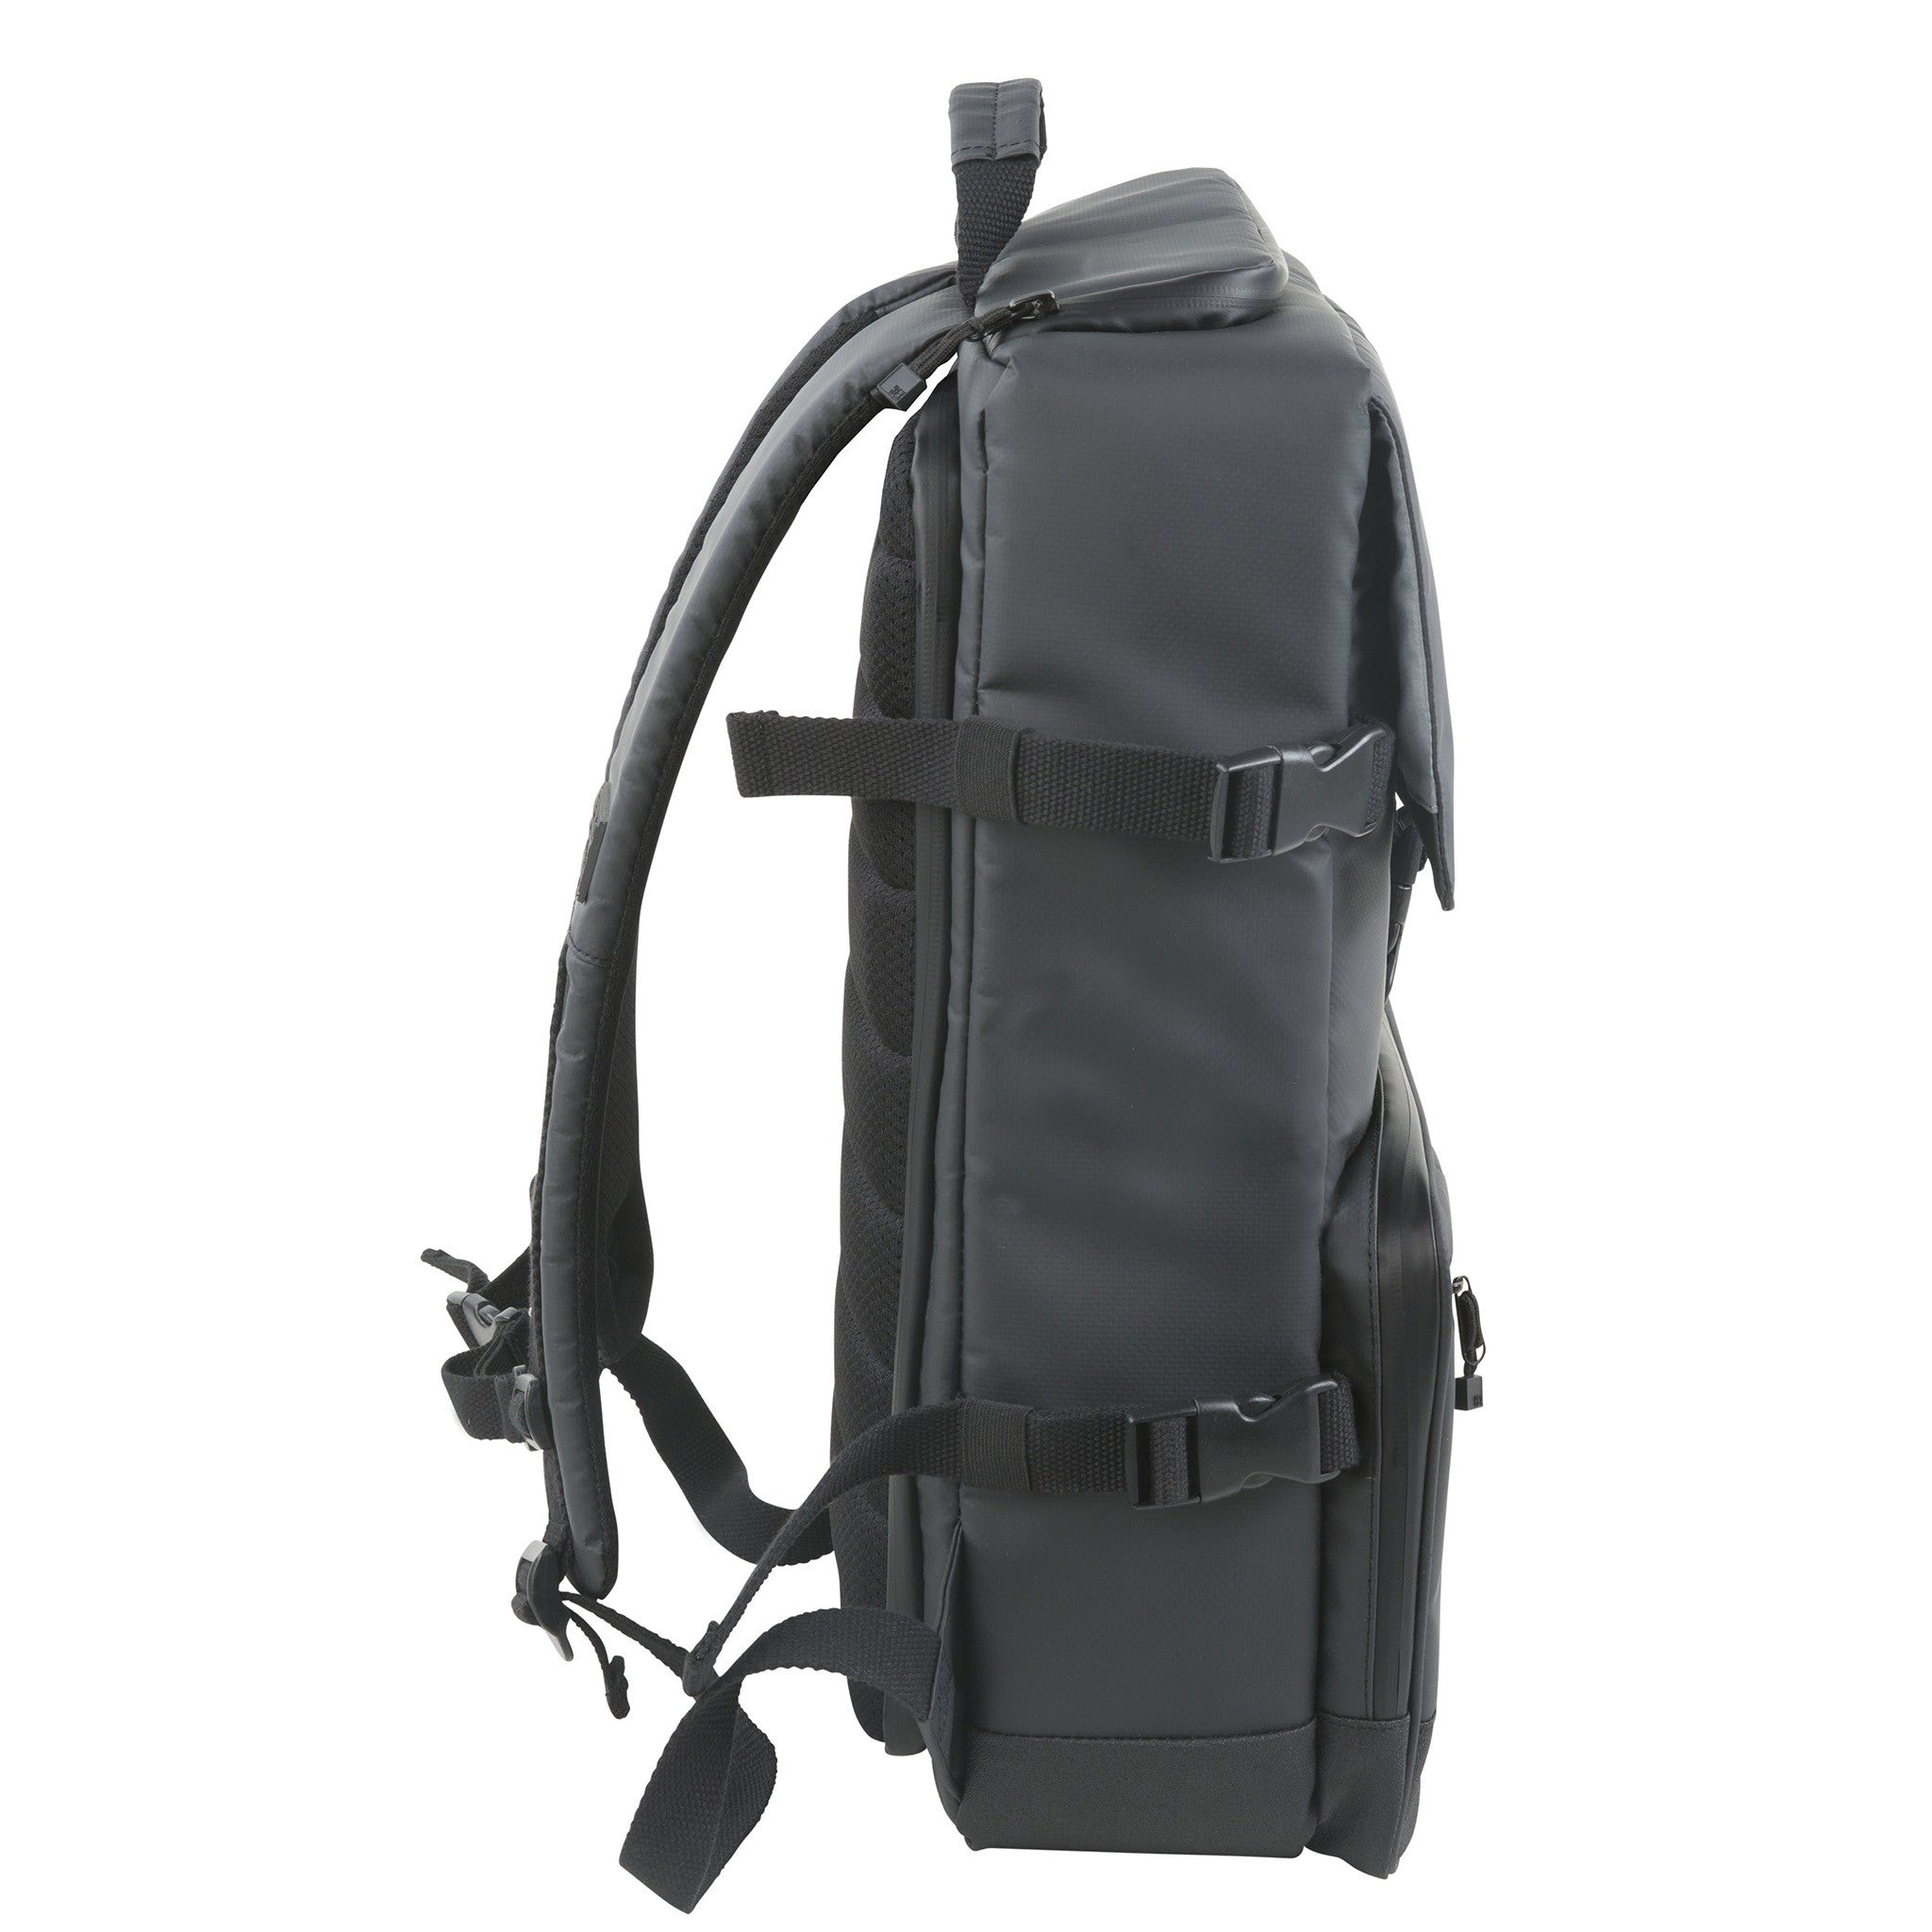 99da9265f6ac Raven Medium DSLR Backpack | Hex Brand - HEX